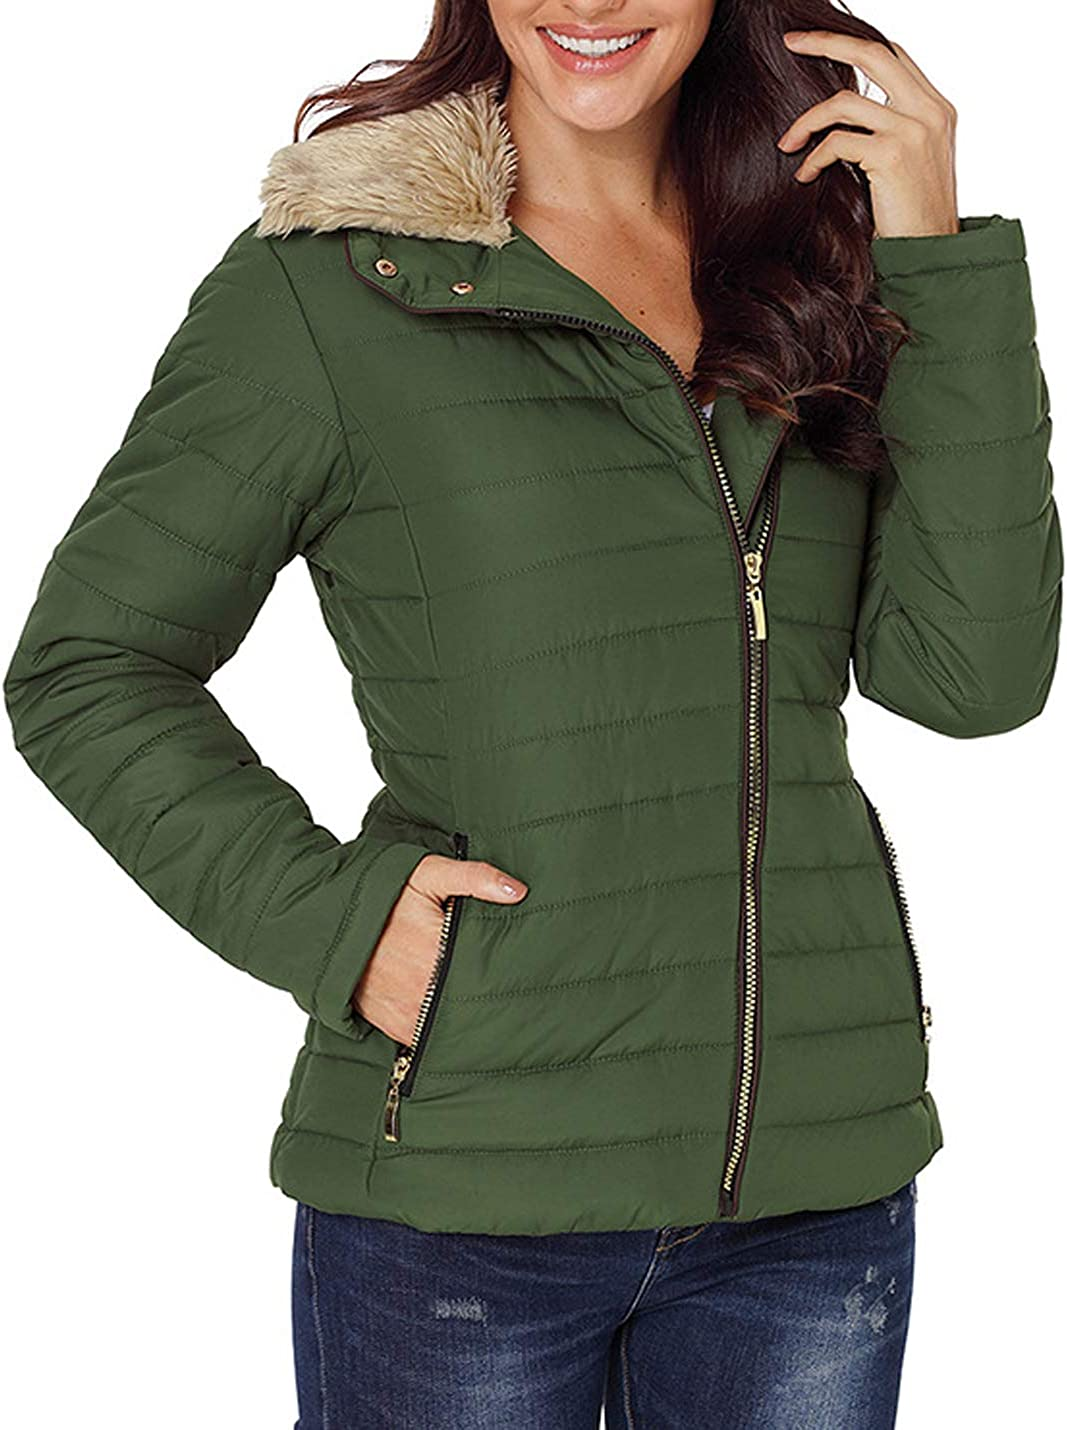 Hooever Womens Casual Slim Faux Fur Trim Neck Cotton Quilted Padded Jackets Parka Coats